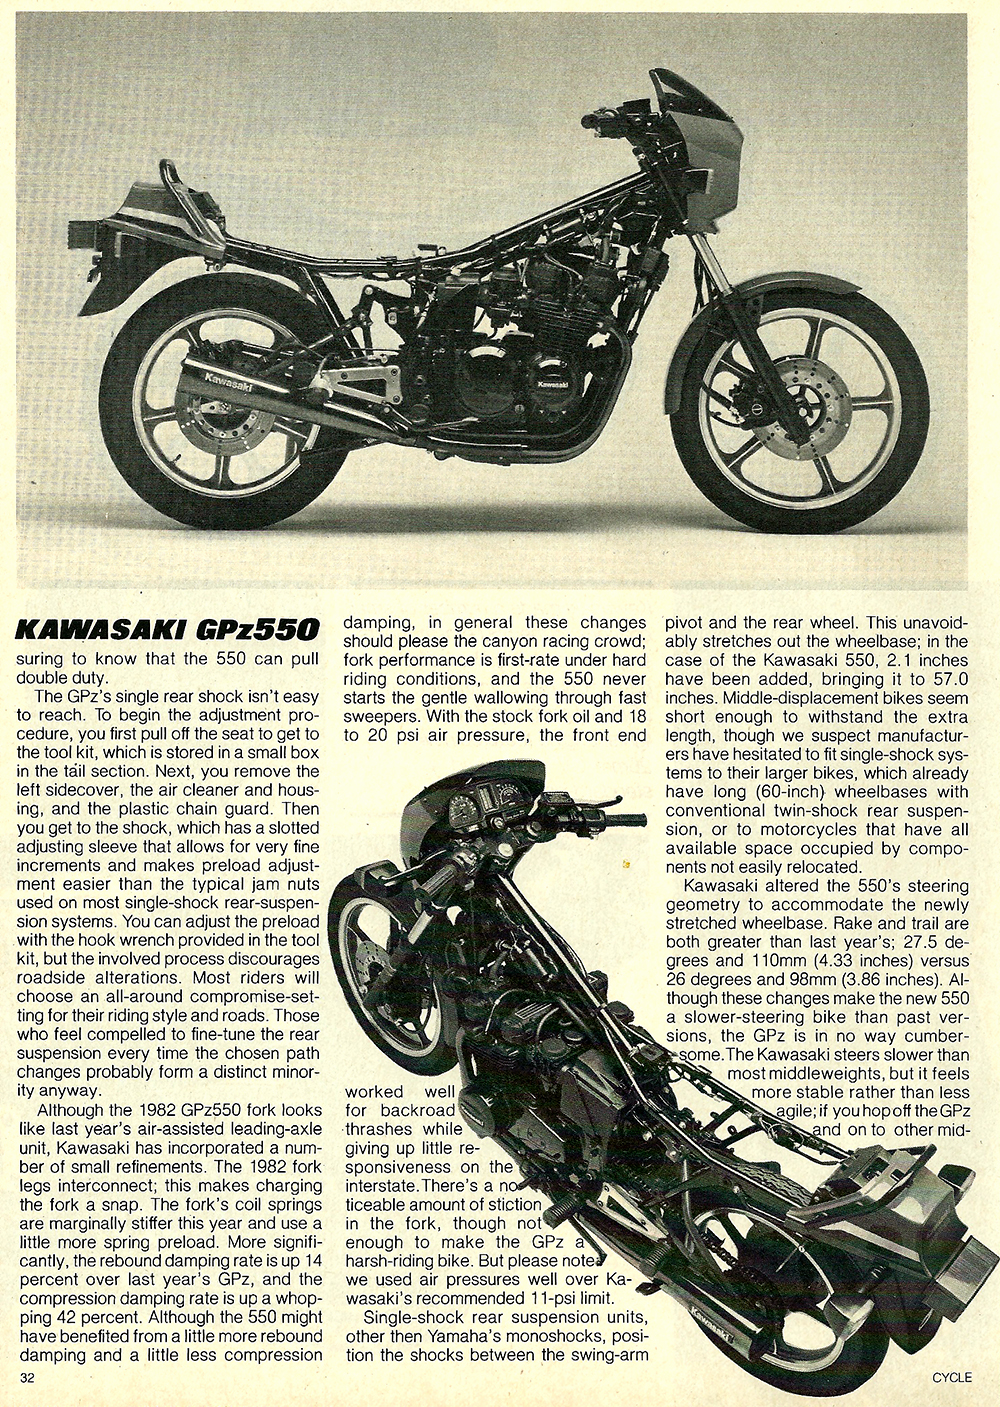 1982 Kawasaki GPz550 road test 05.jpg